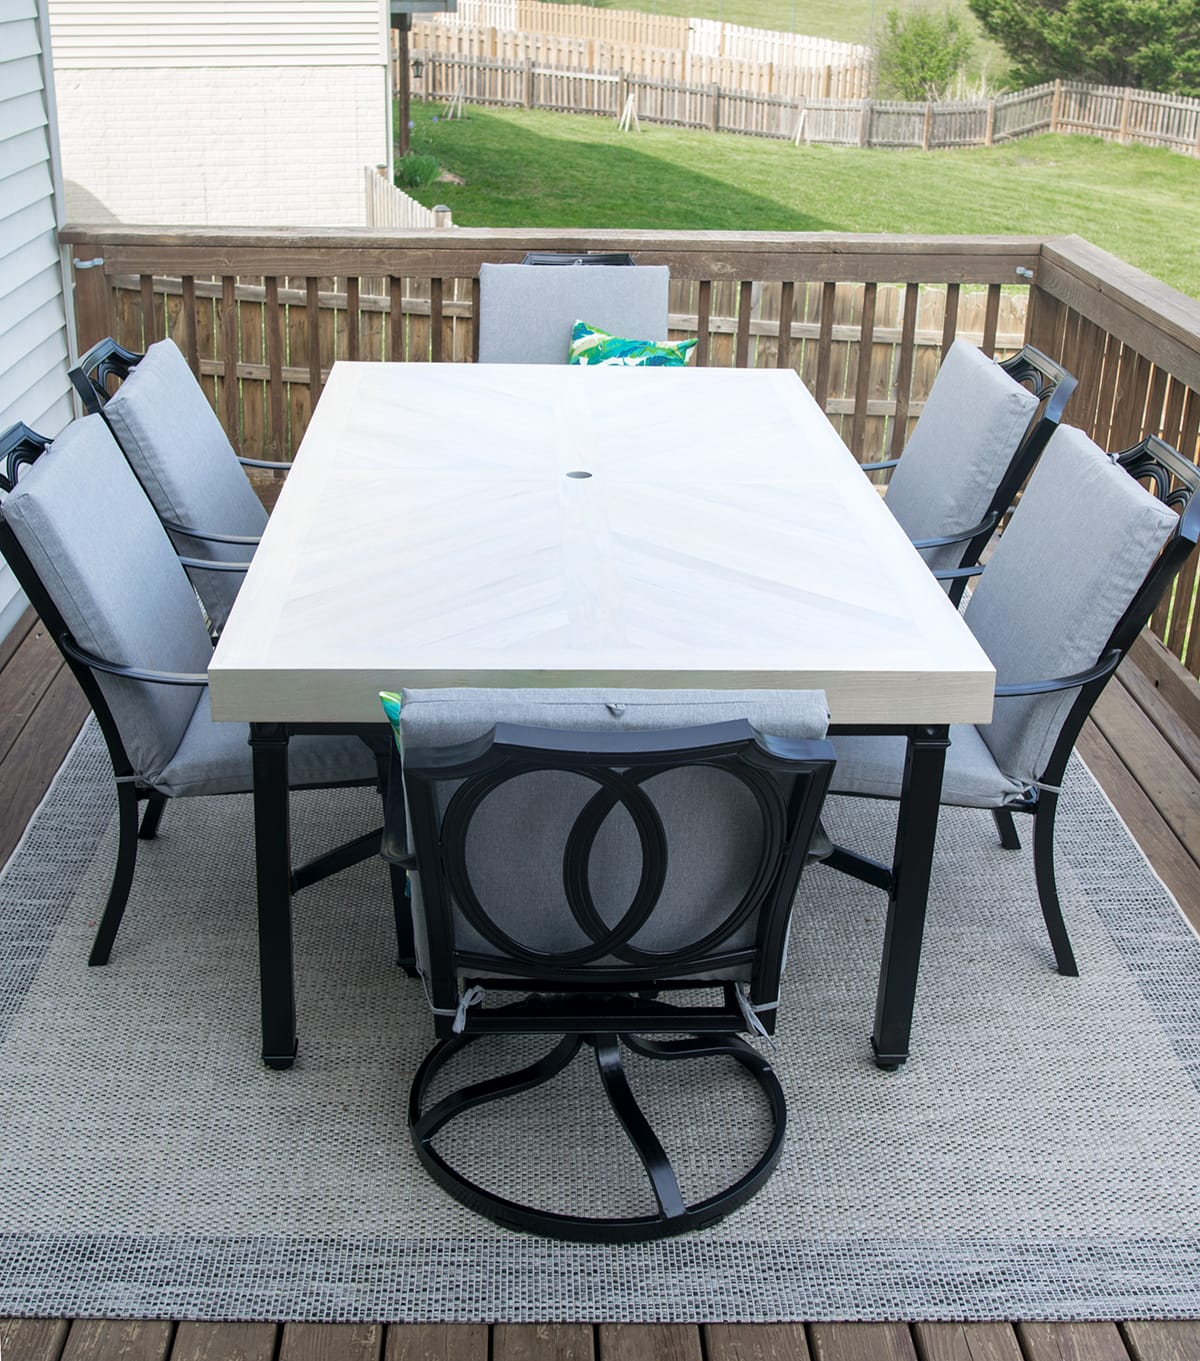 Metal patio table and chairs refinished with black trim, wood top, and gray cushions.